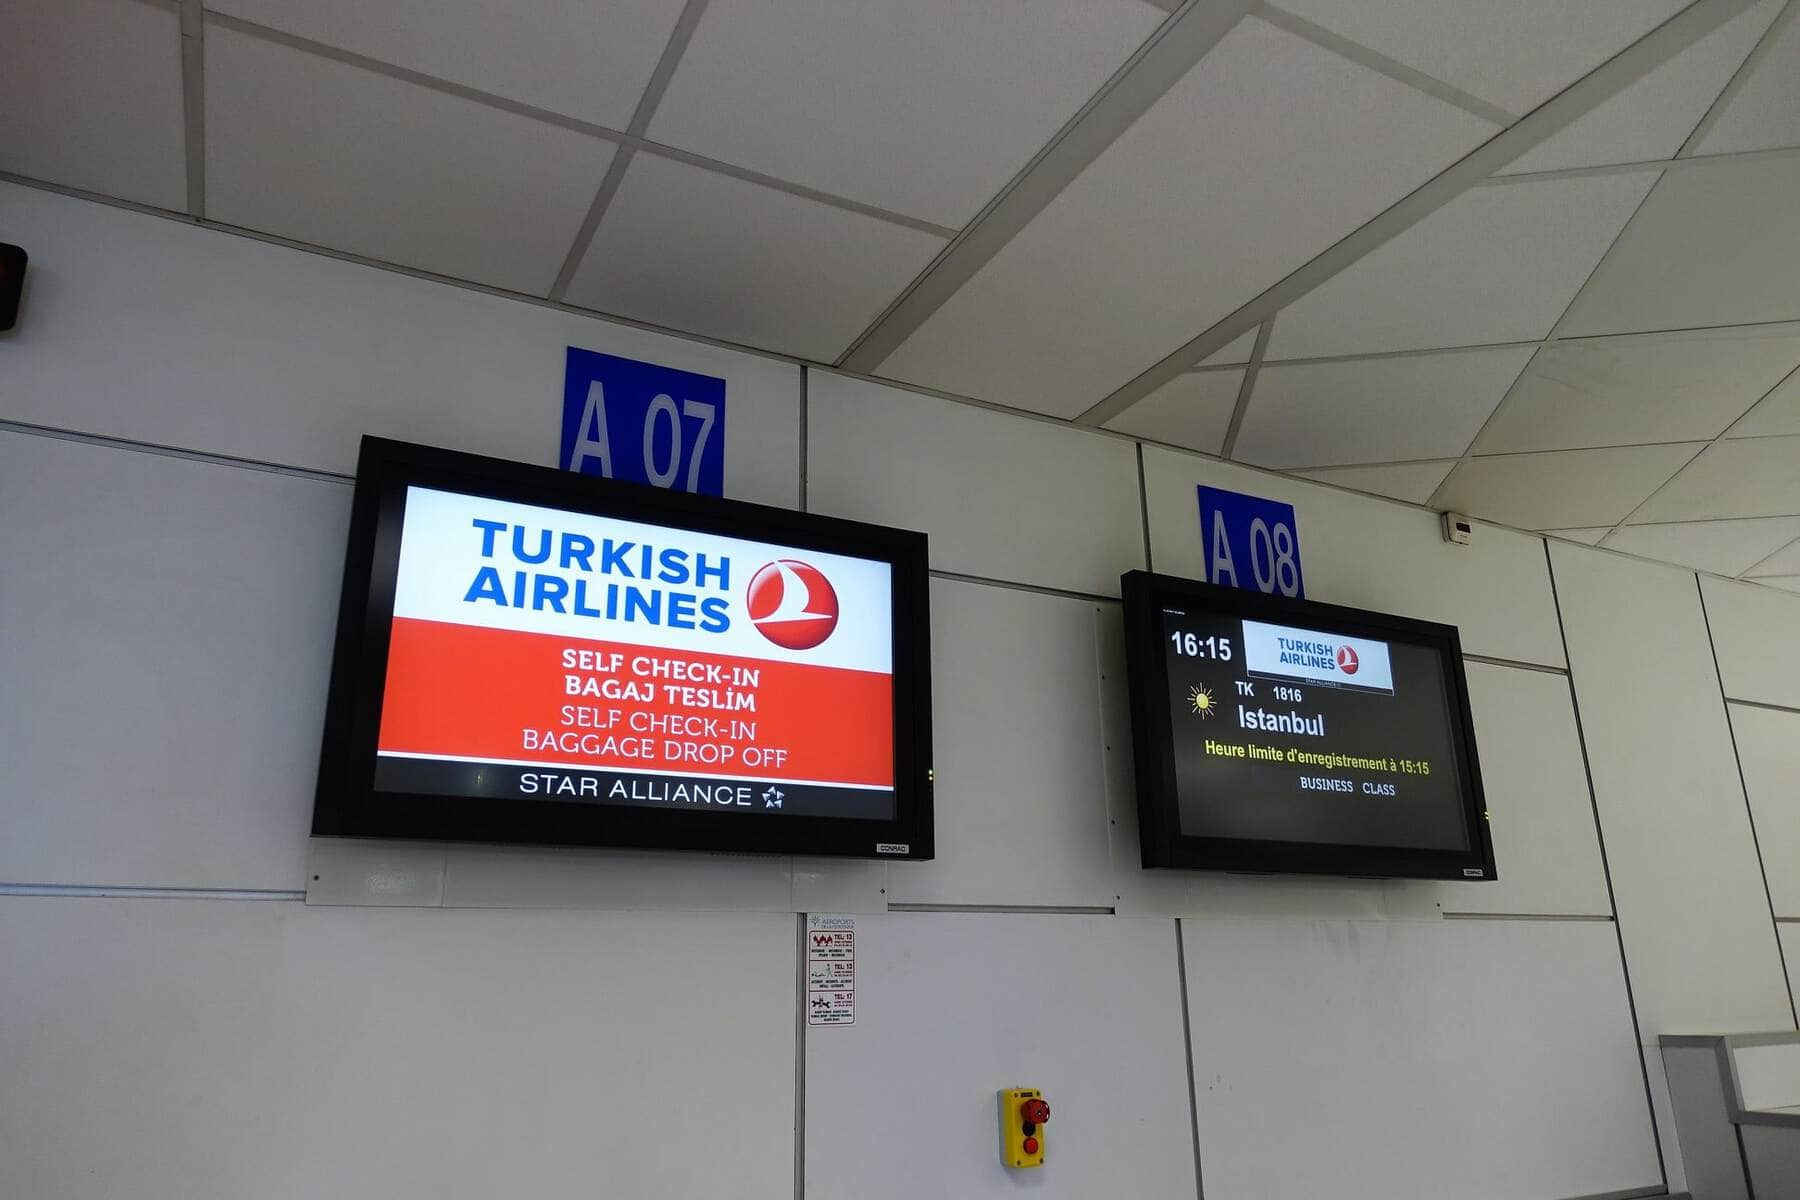 turkish airlines nce ist 01